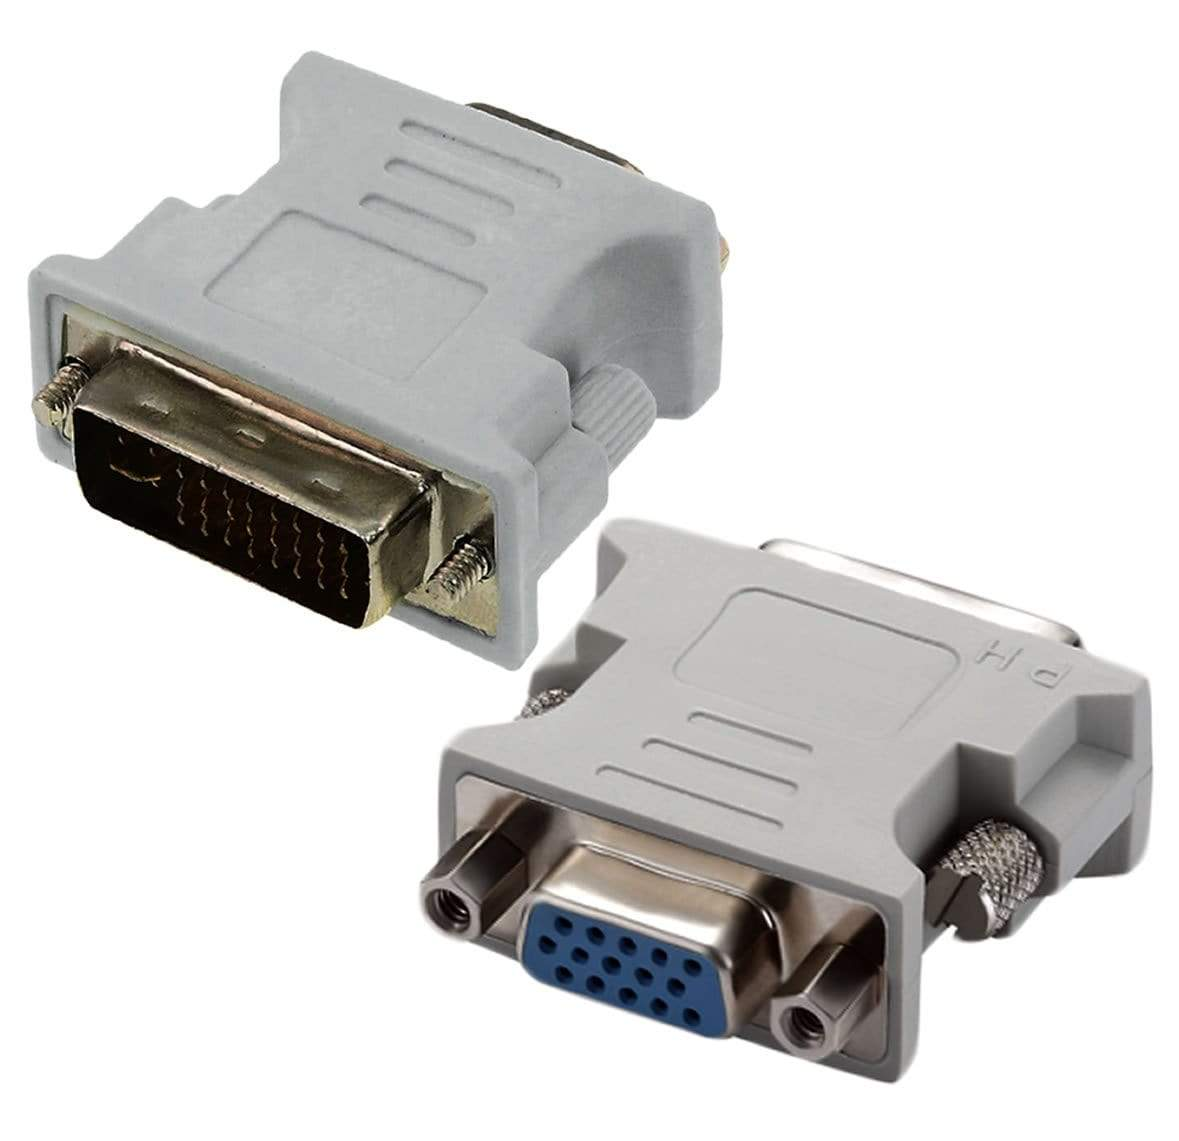 Astrum DVI-I 24+5P to VGA Female HD Adapter - PA240 Snatcher Online Shopping South Africa